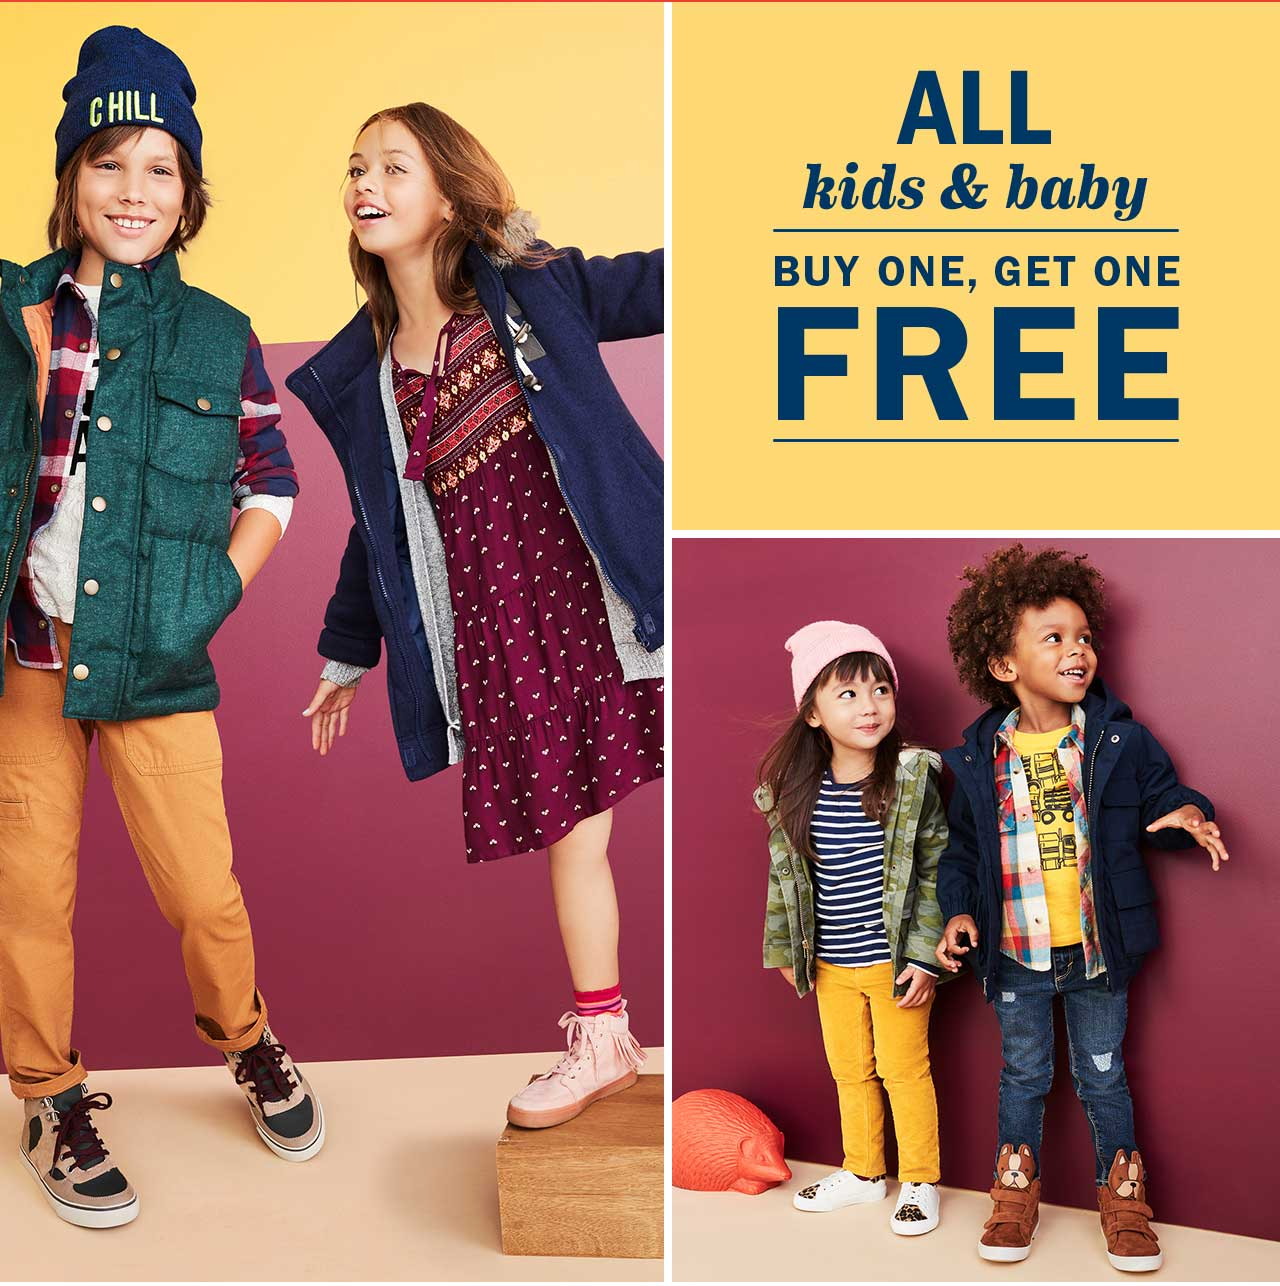 ALL kids & baby | BUY ONE, GET ONE FREE